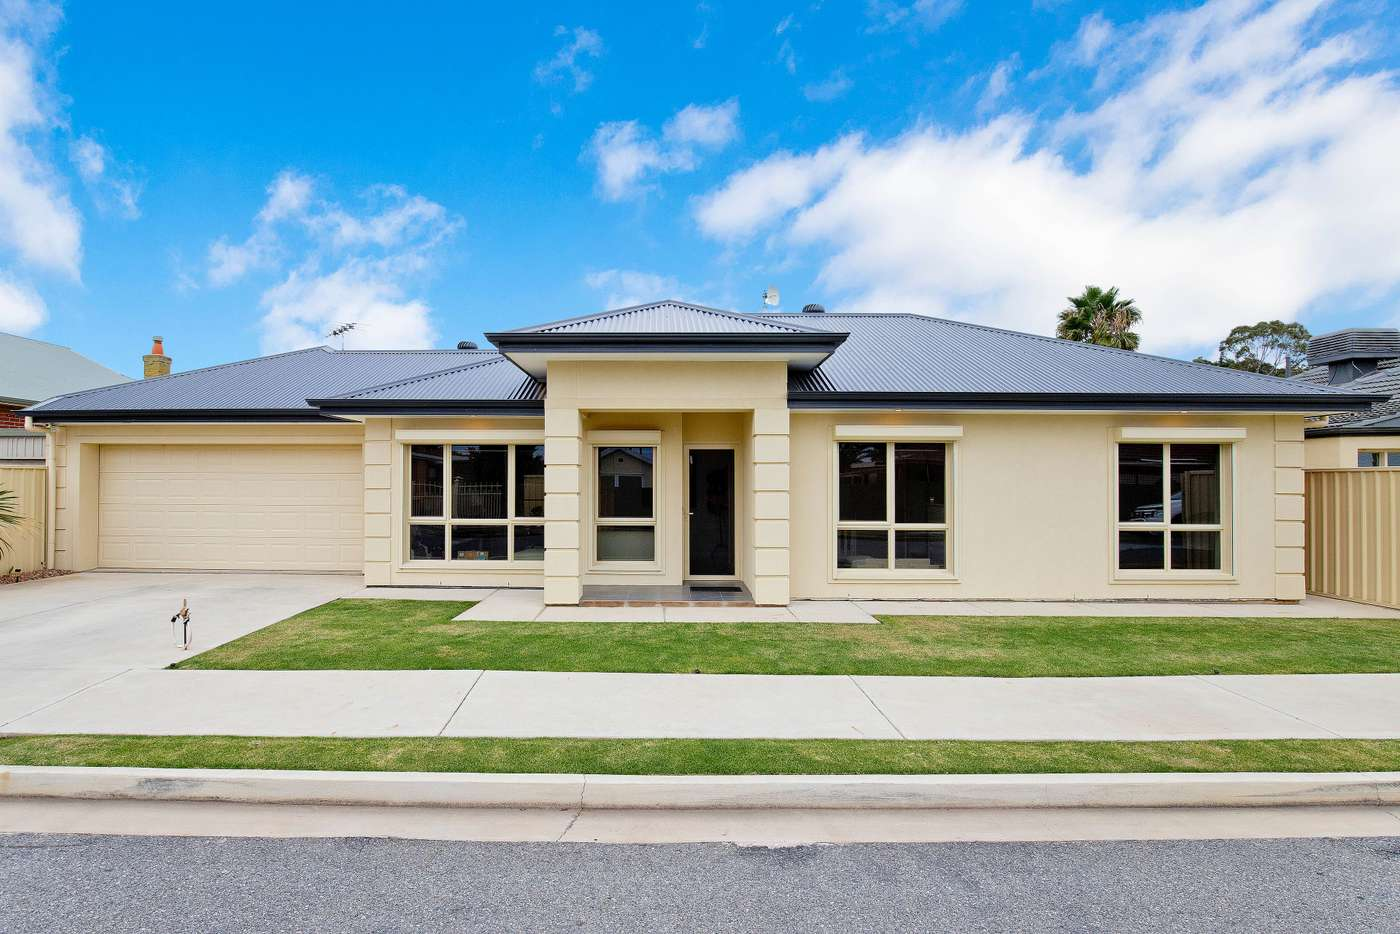 Main view of Homely house listing, 11 Watson Street, Beverley SA 5009